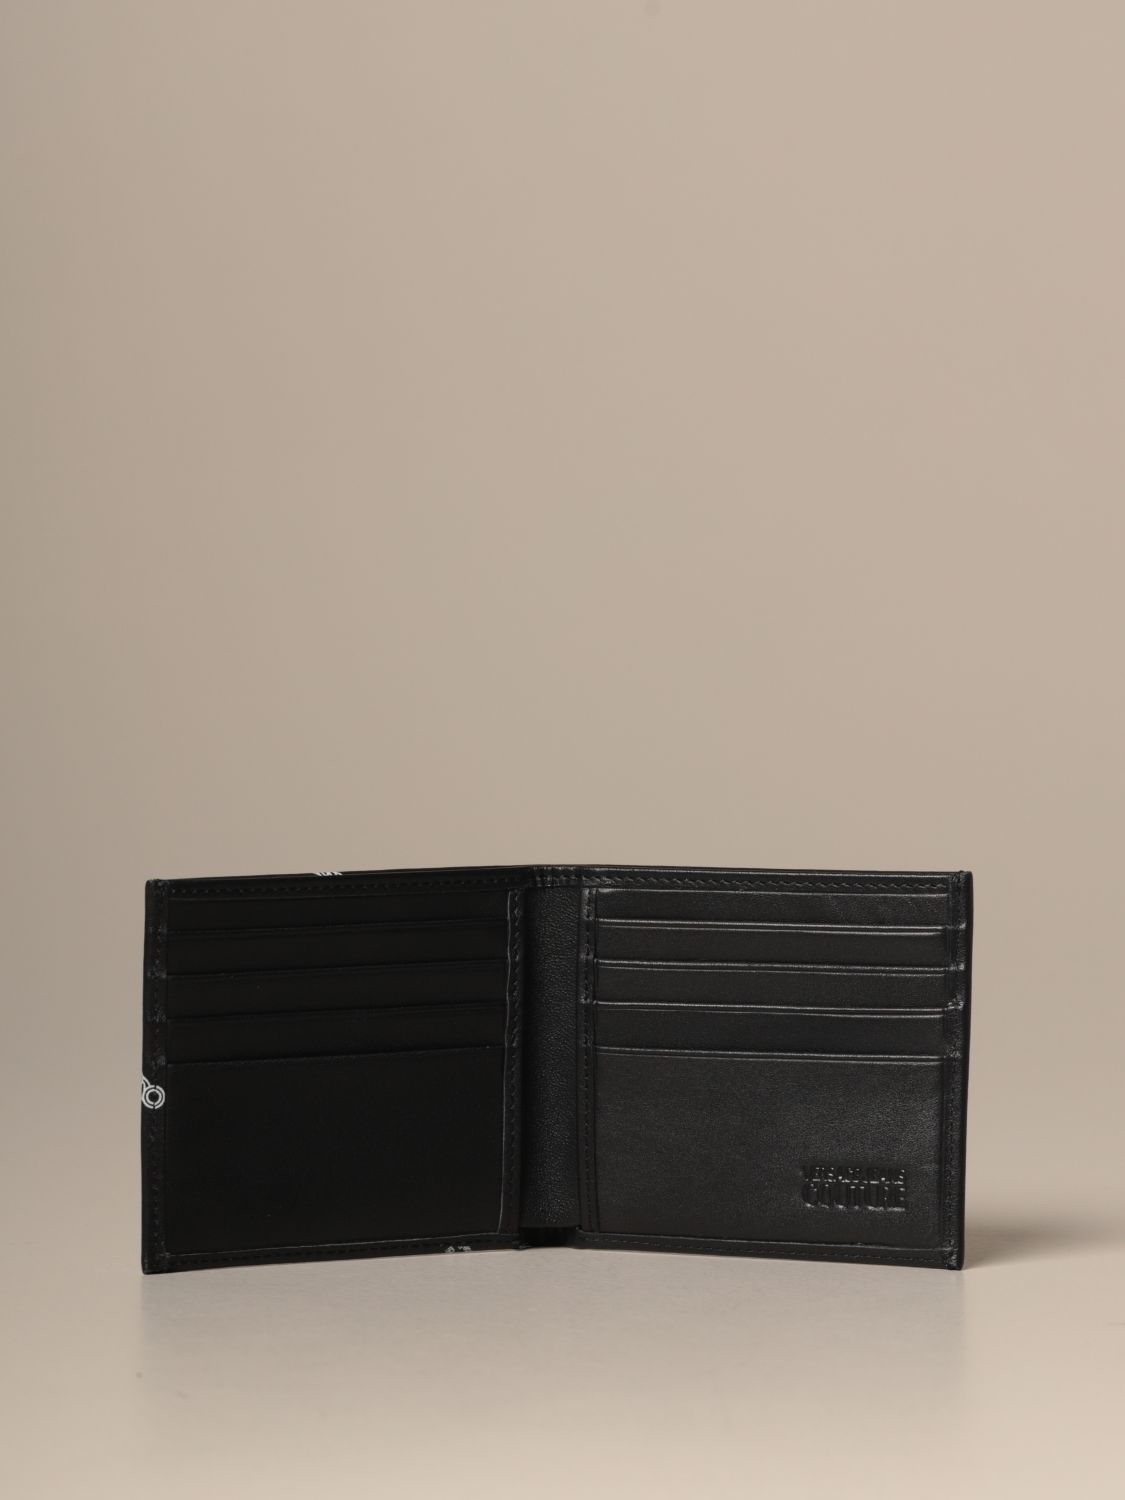 Wallet Versace Jeans Couture: Versace Jeans Couture synthetic leather wallet black 2